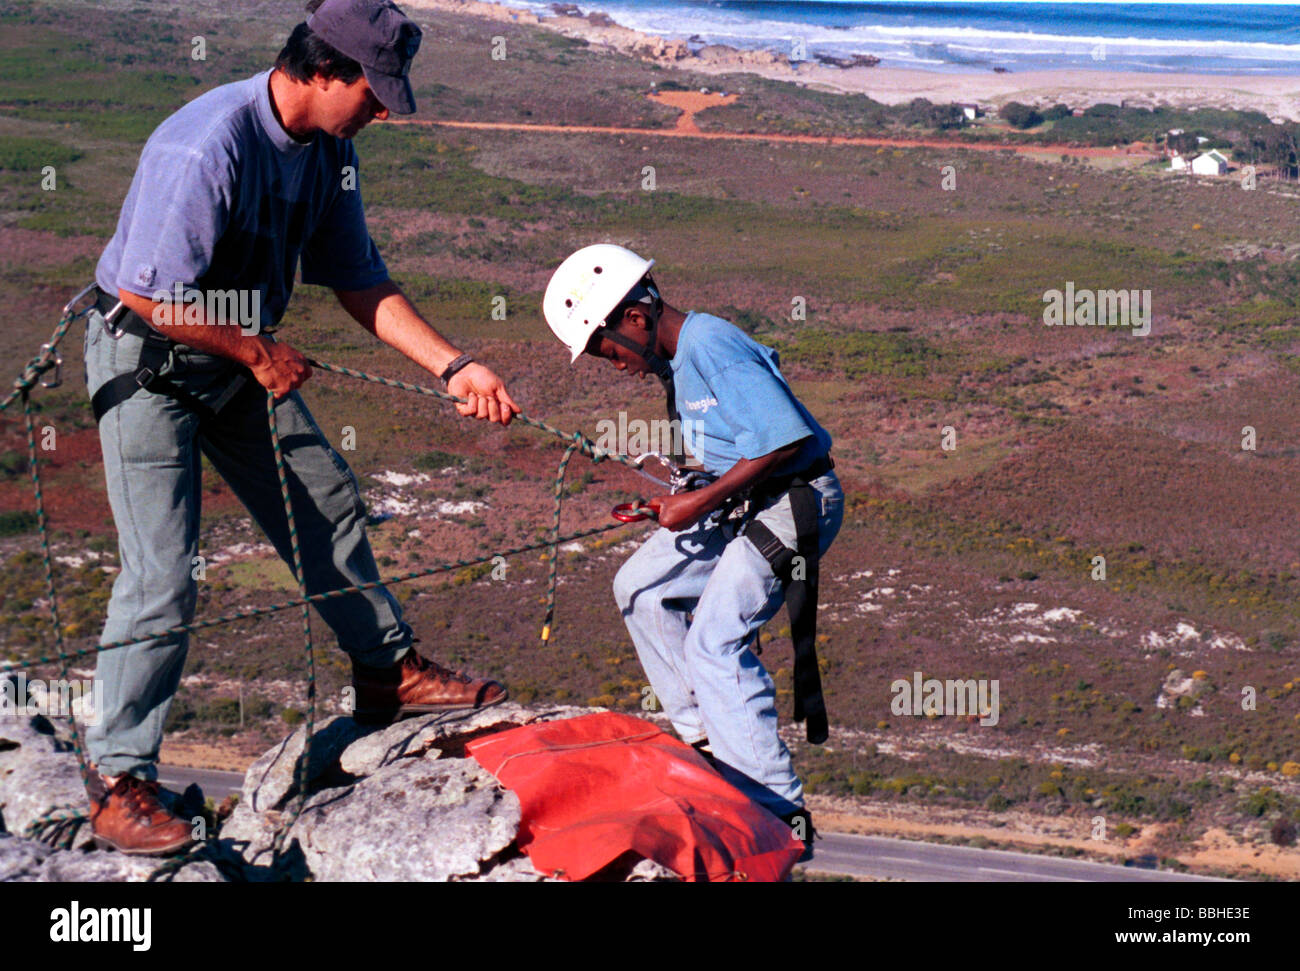 Kleinmond Western Cape South Africa 5 1998 n neducation young boy abseilling rocks water mountains ropes township - Stock Image